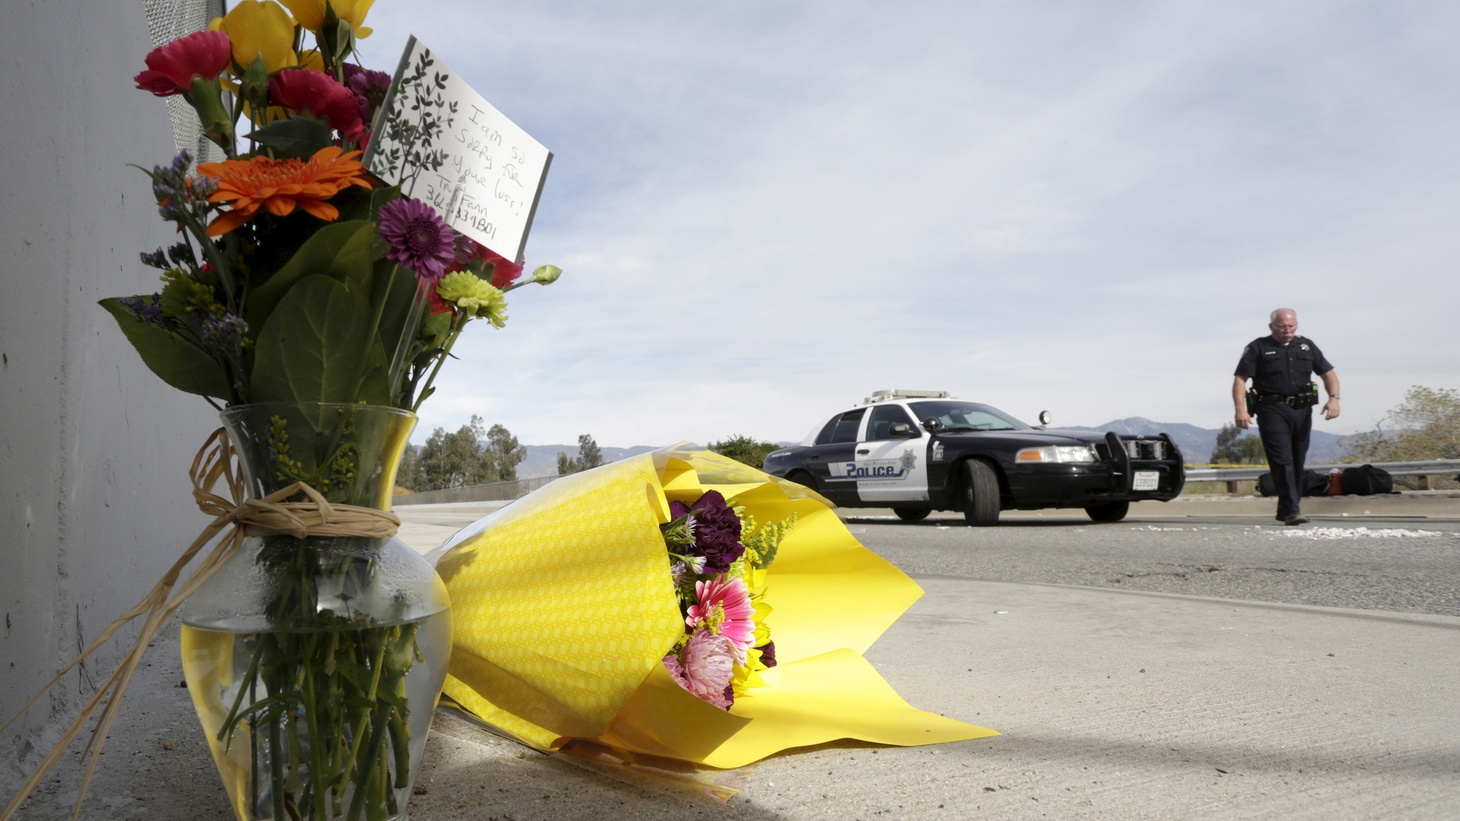 Yesterday's mass shooting has focused attention on the city of San Bernardino and its struggle with urban decay. The identity of the killers has also cast an unwelcome light on the Muslim community in the Inland Empire.